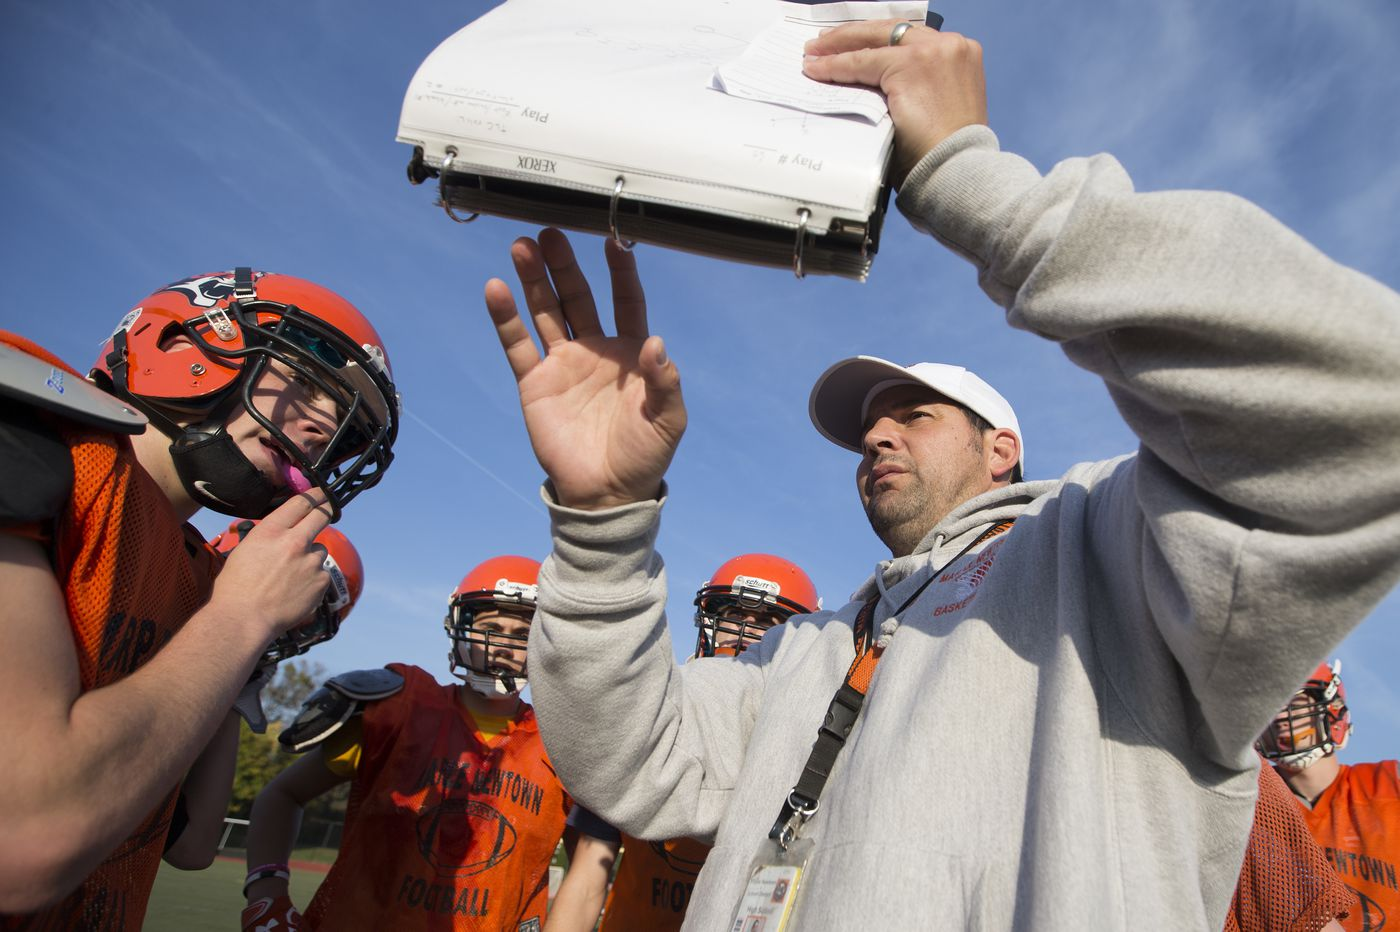 College football recruiting: Hudl has changed landscape and 'evened the playing field'